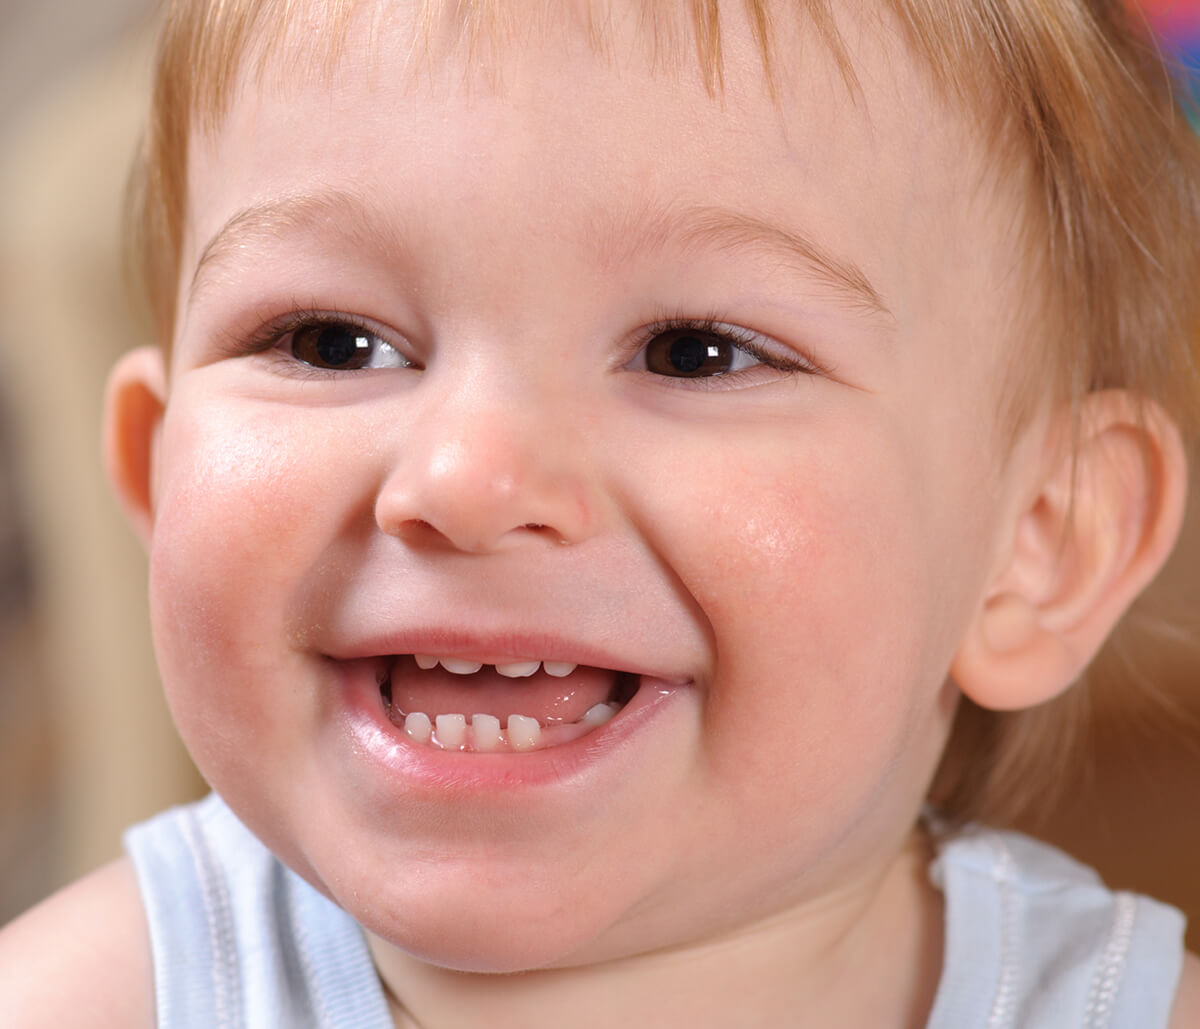 Infant Oral Hygiene And Good Dental Care in Greensboro NC Area